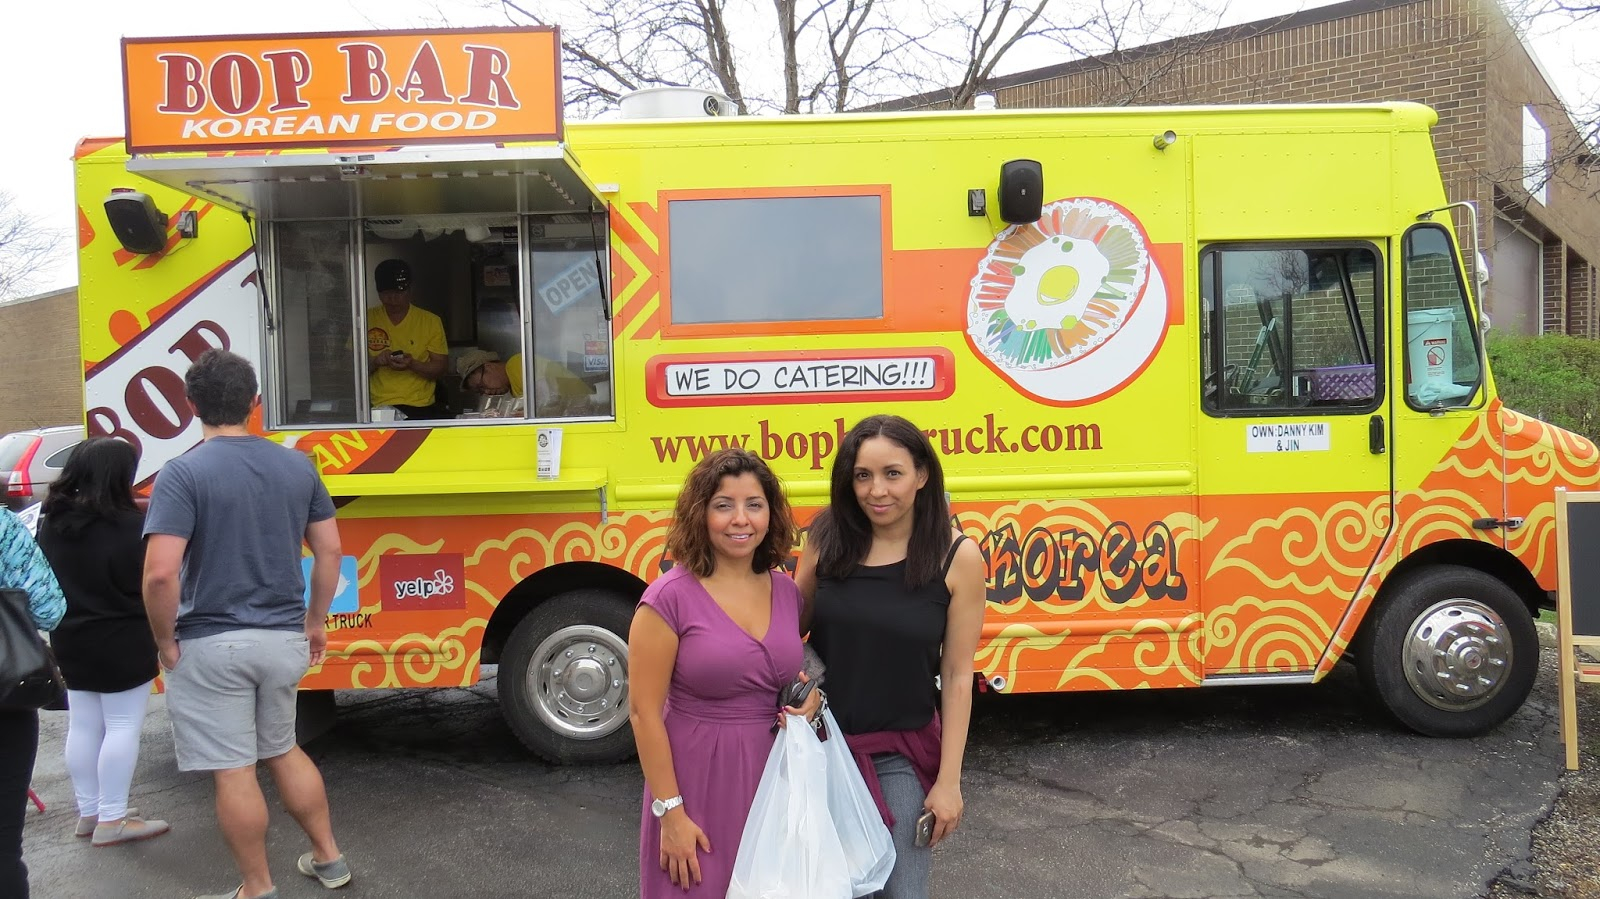 Northbrook Food Truck Fest